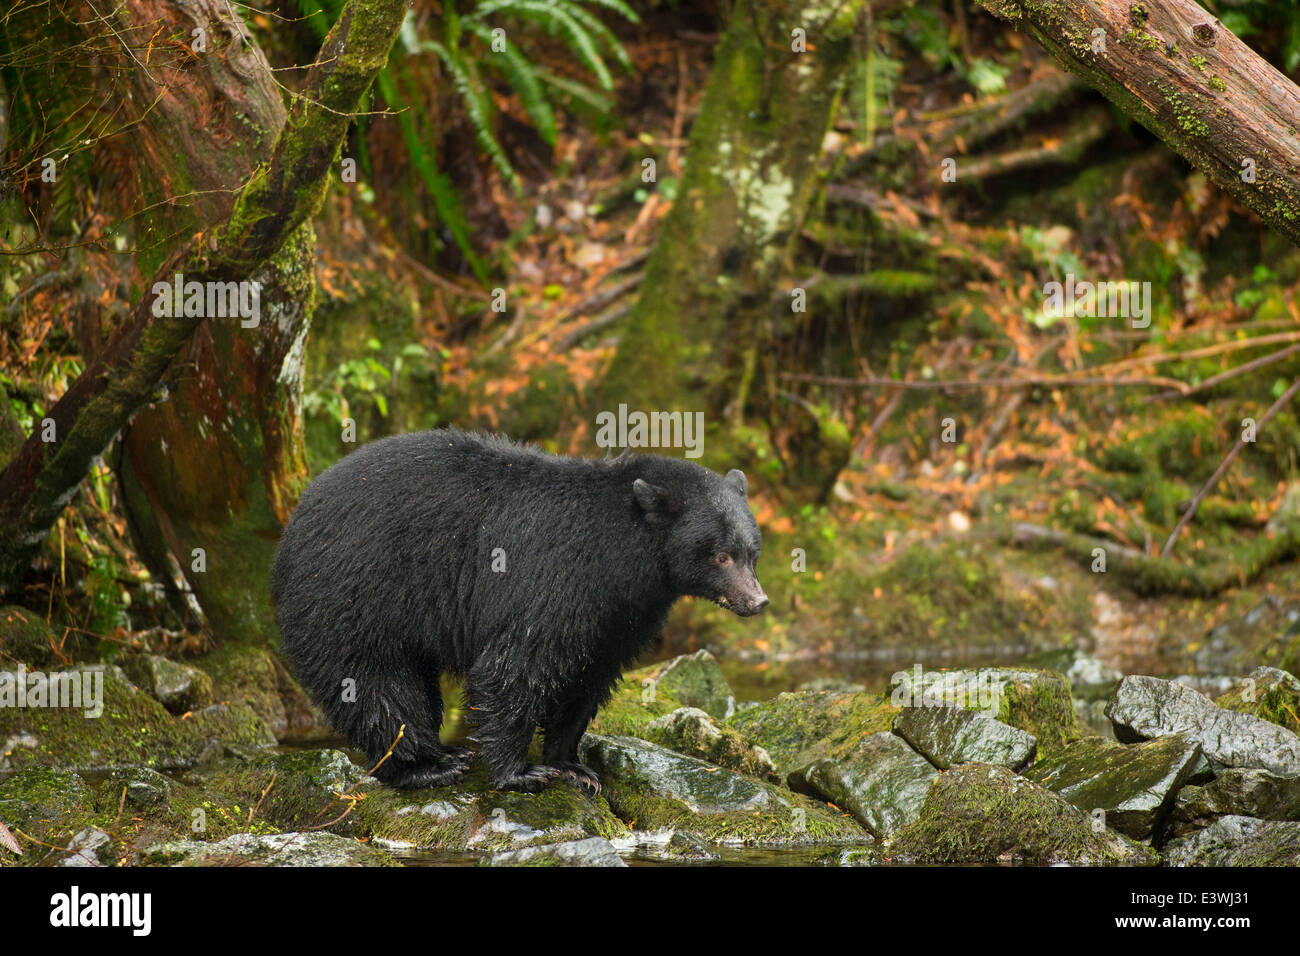 Black bear on rocks fishing for salmon in Thornton Creek Fish Hatchery-Ucluelet, British Columbia, Canada. Stock Photo